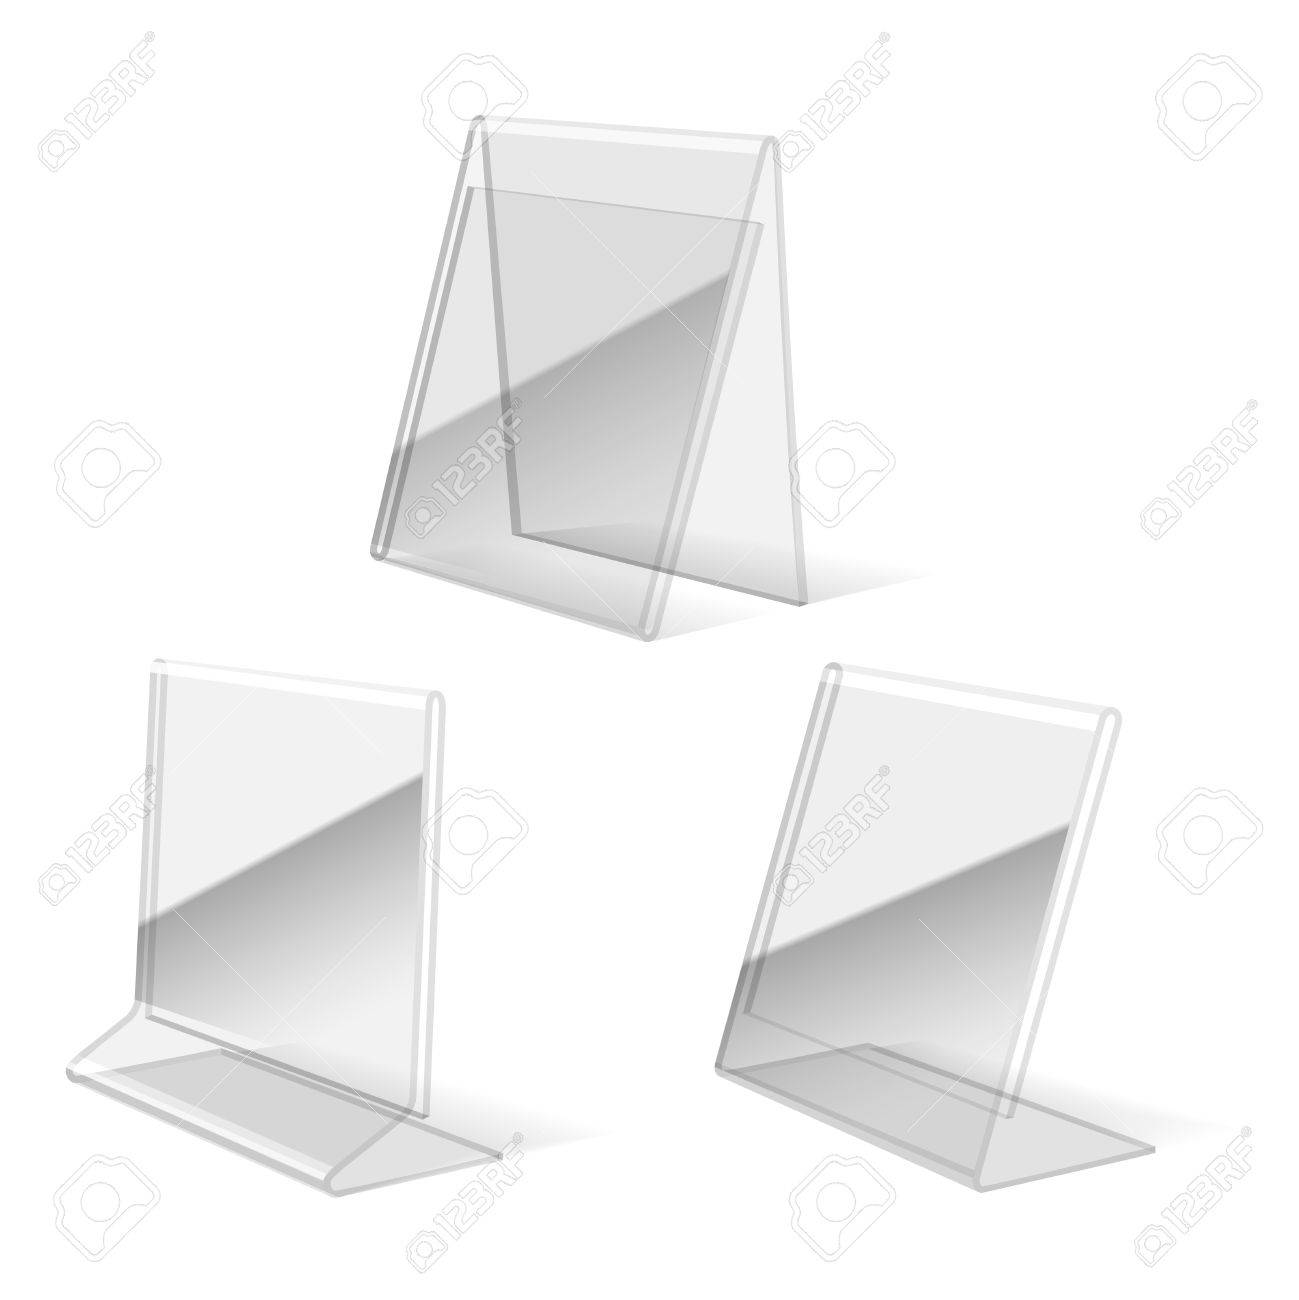 clear plastic holder paper business card stand vector illustration stock vector 61333676 - Business Card Stand